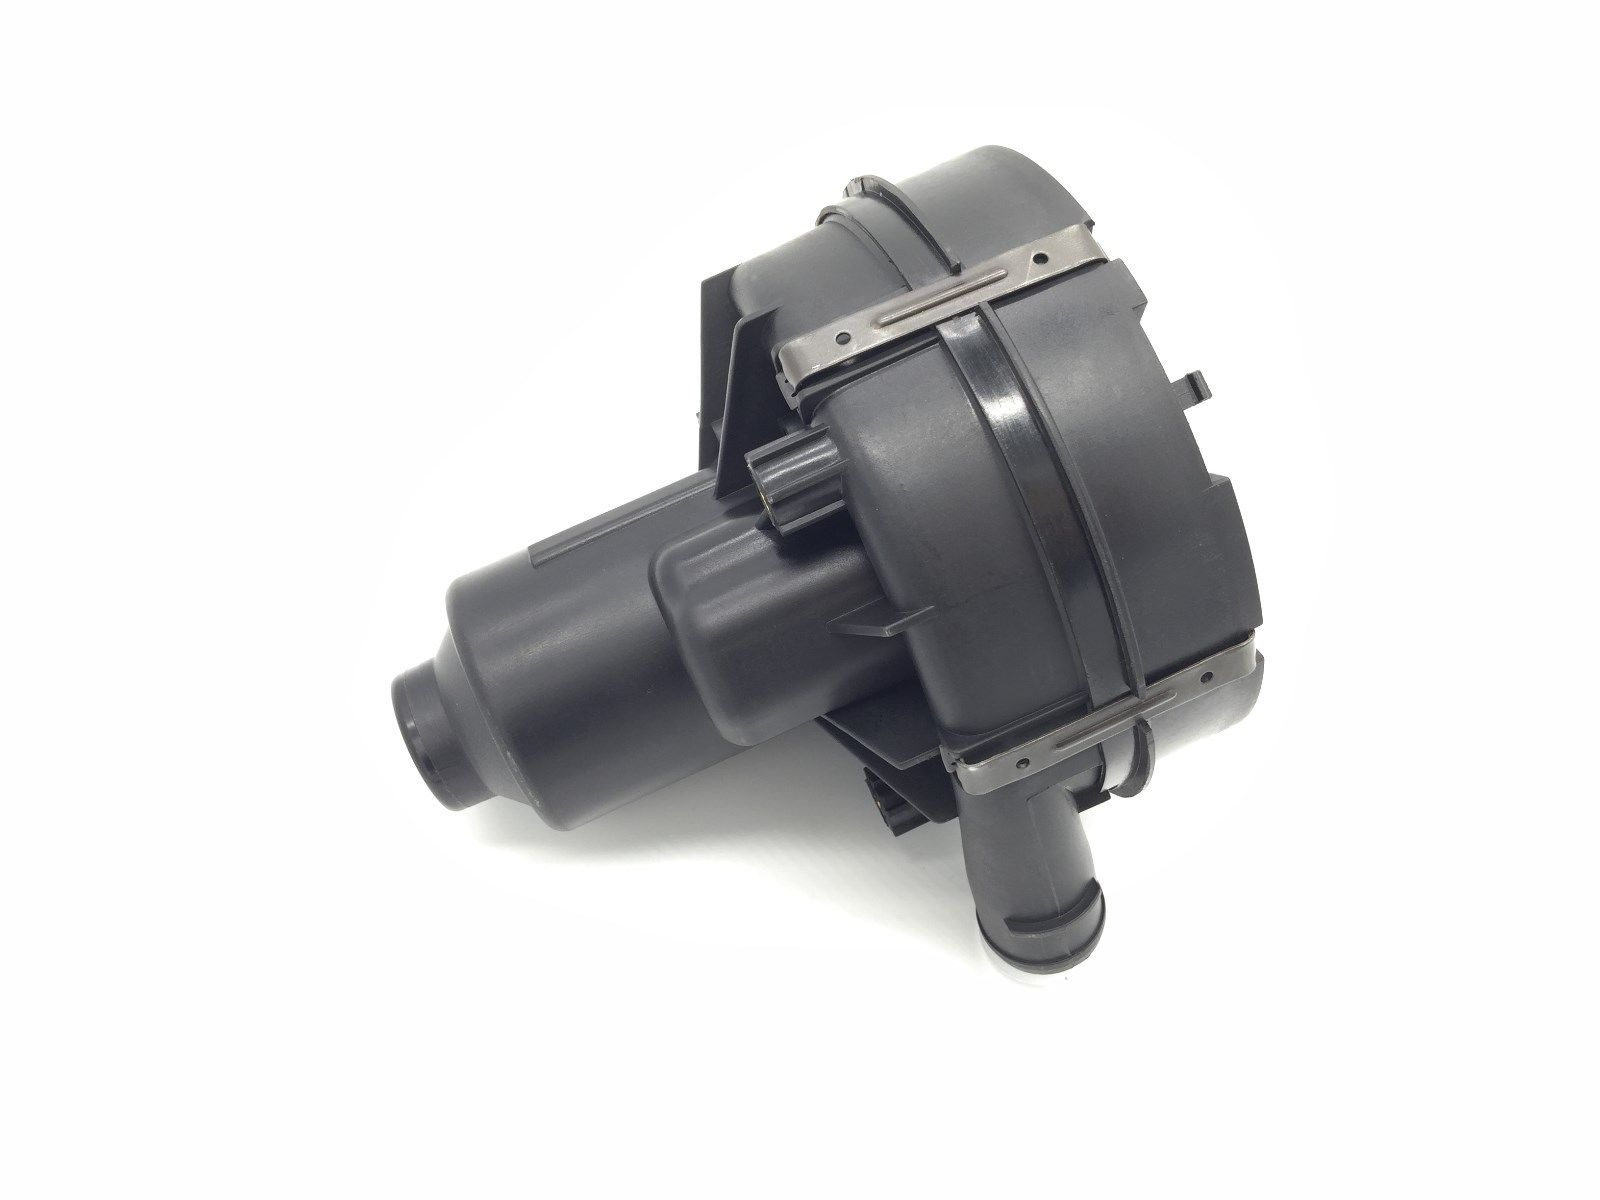 2002 oldsmobile intrigue secondary air injection pump